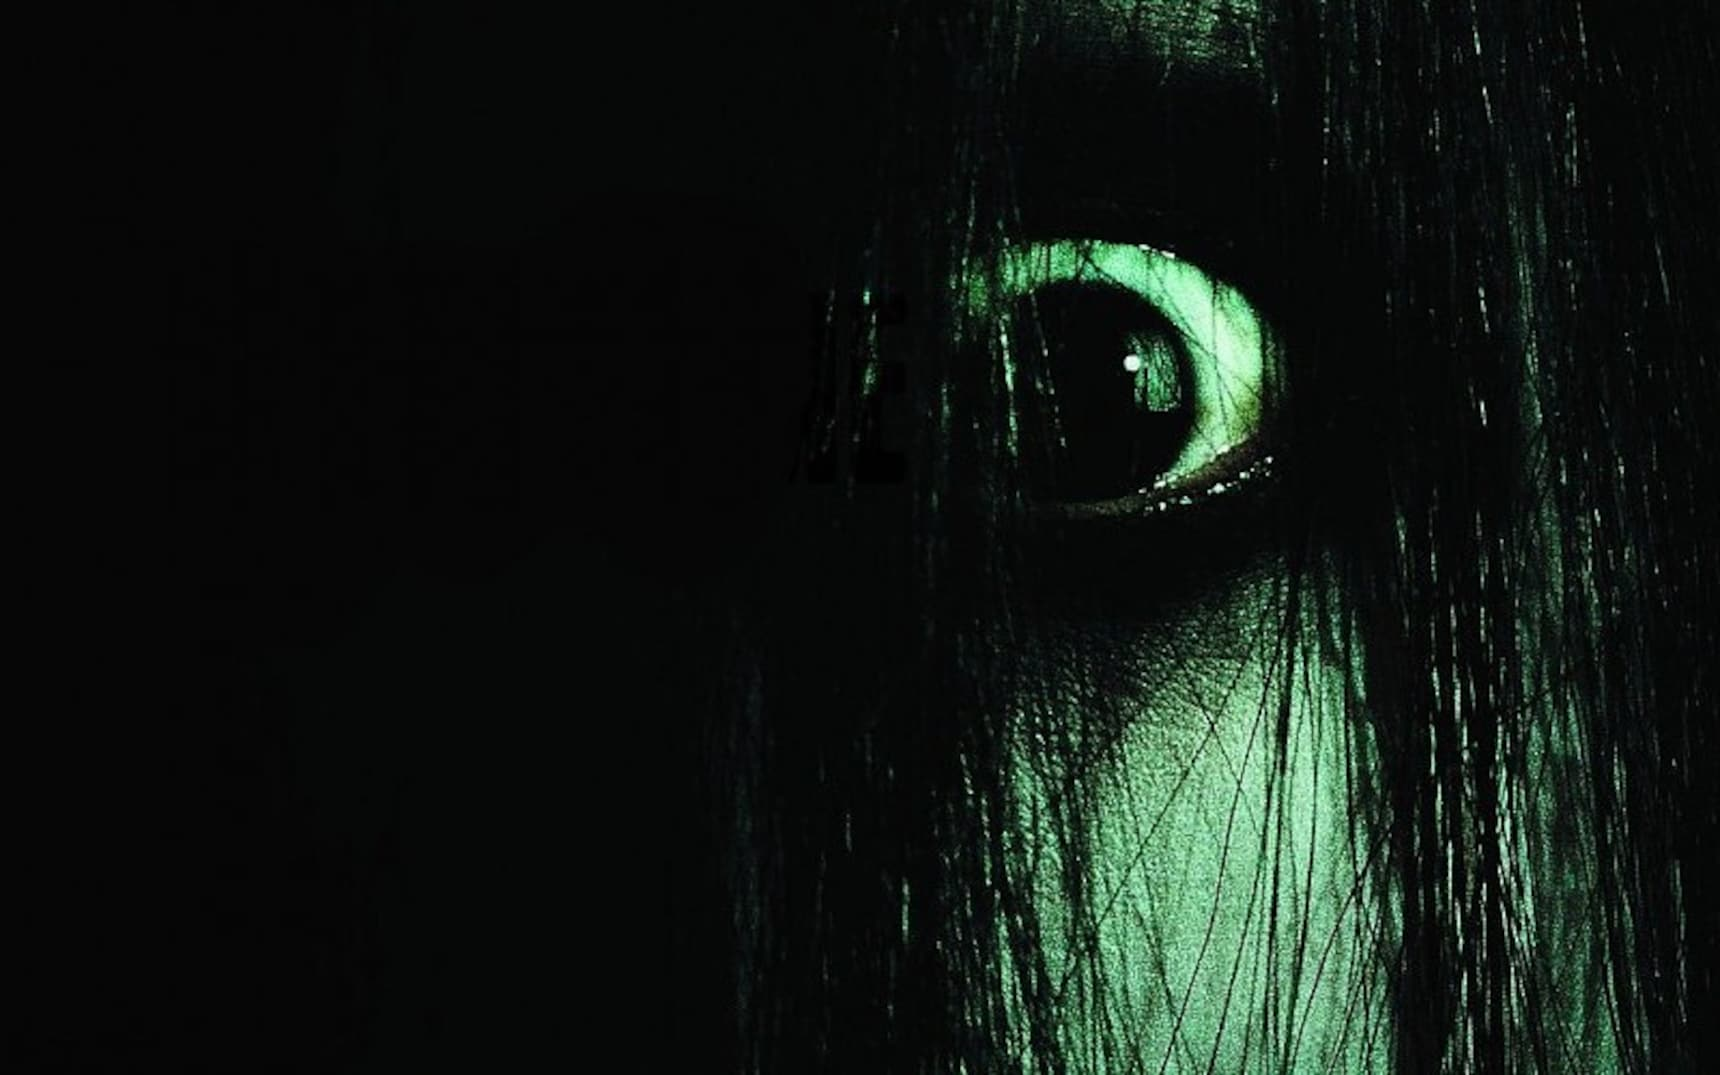 5 Creepy Japanese Film Remakes From the West